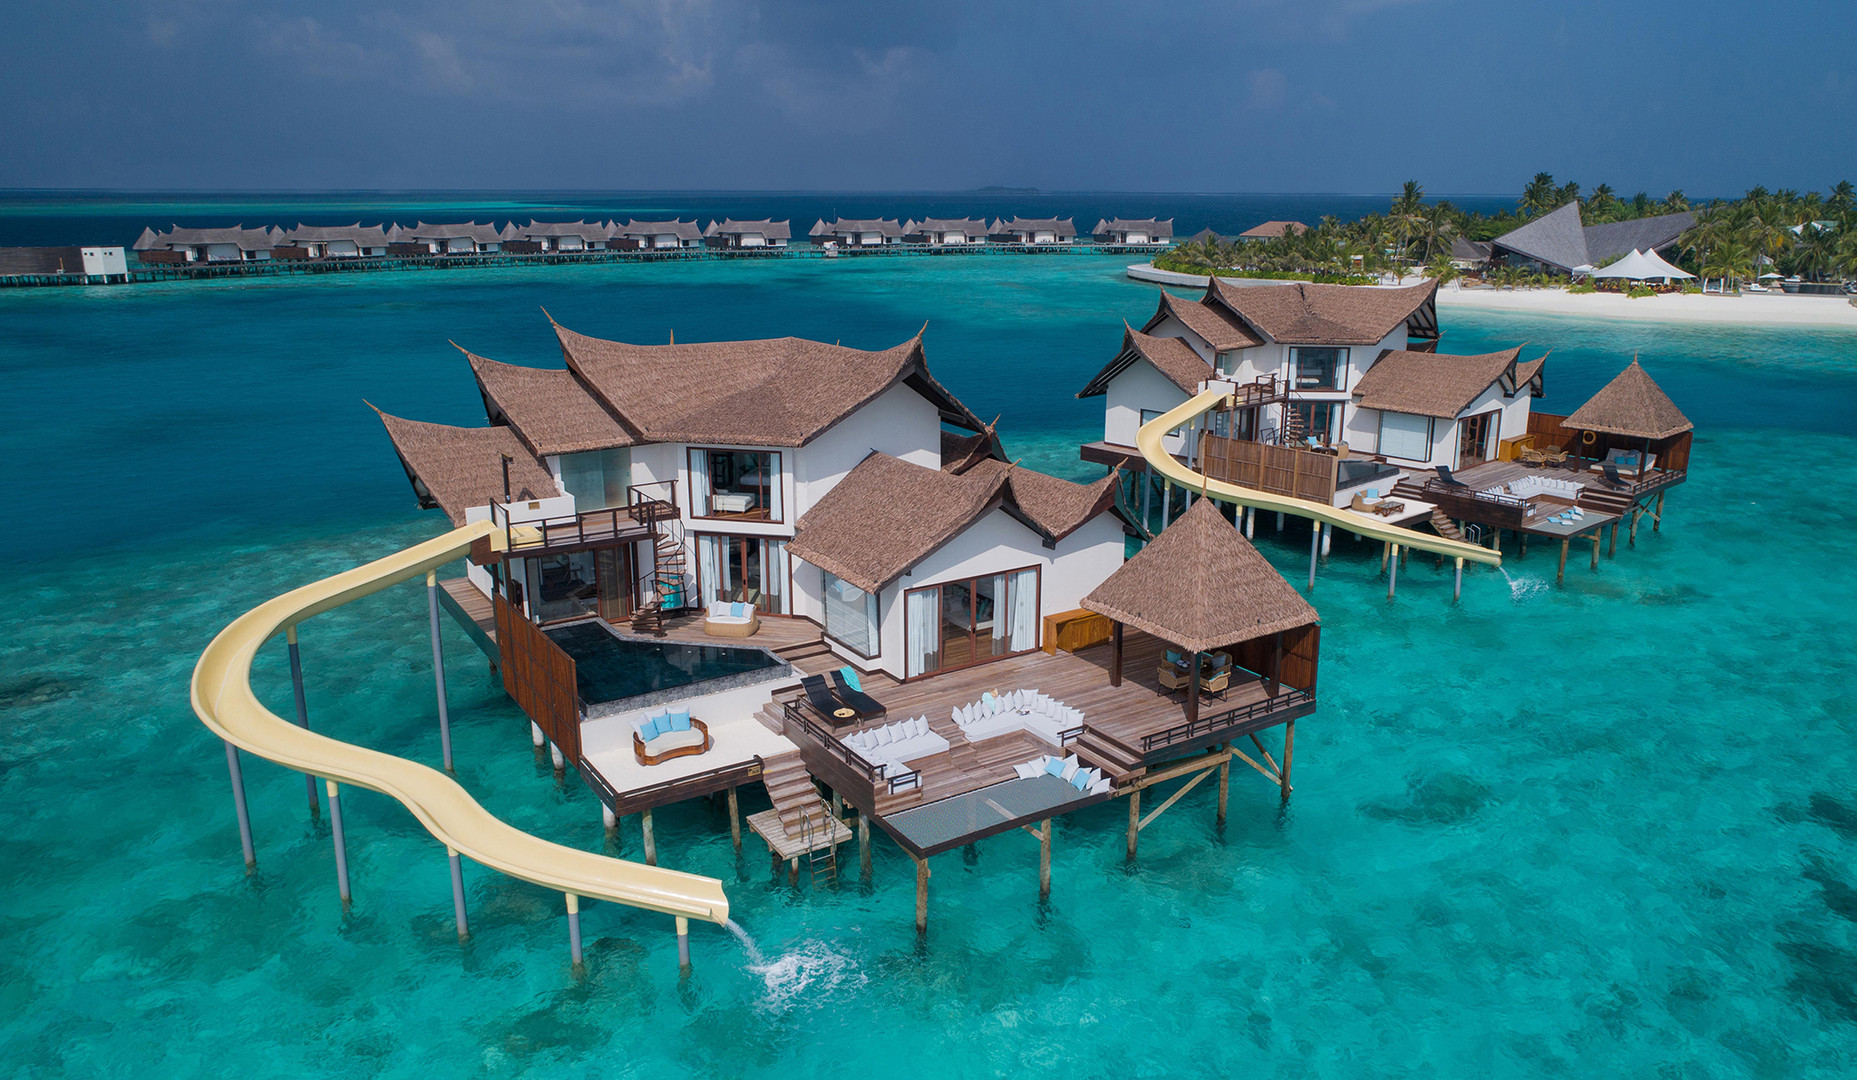 OZEN RESERVE BOLIFUSHI - Private Ocean RESERVE with Slide - Exterior View 1